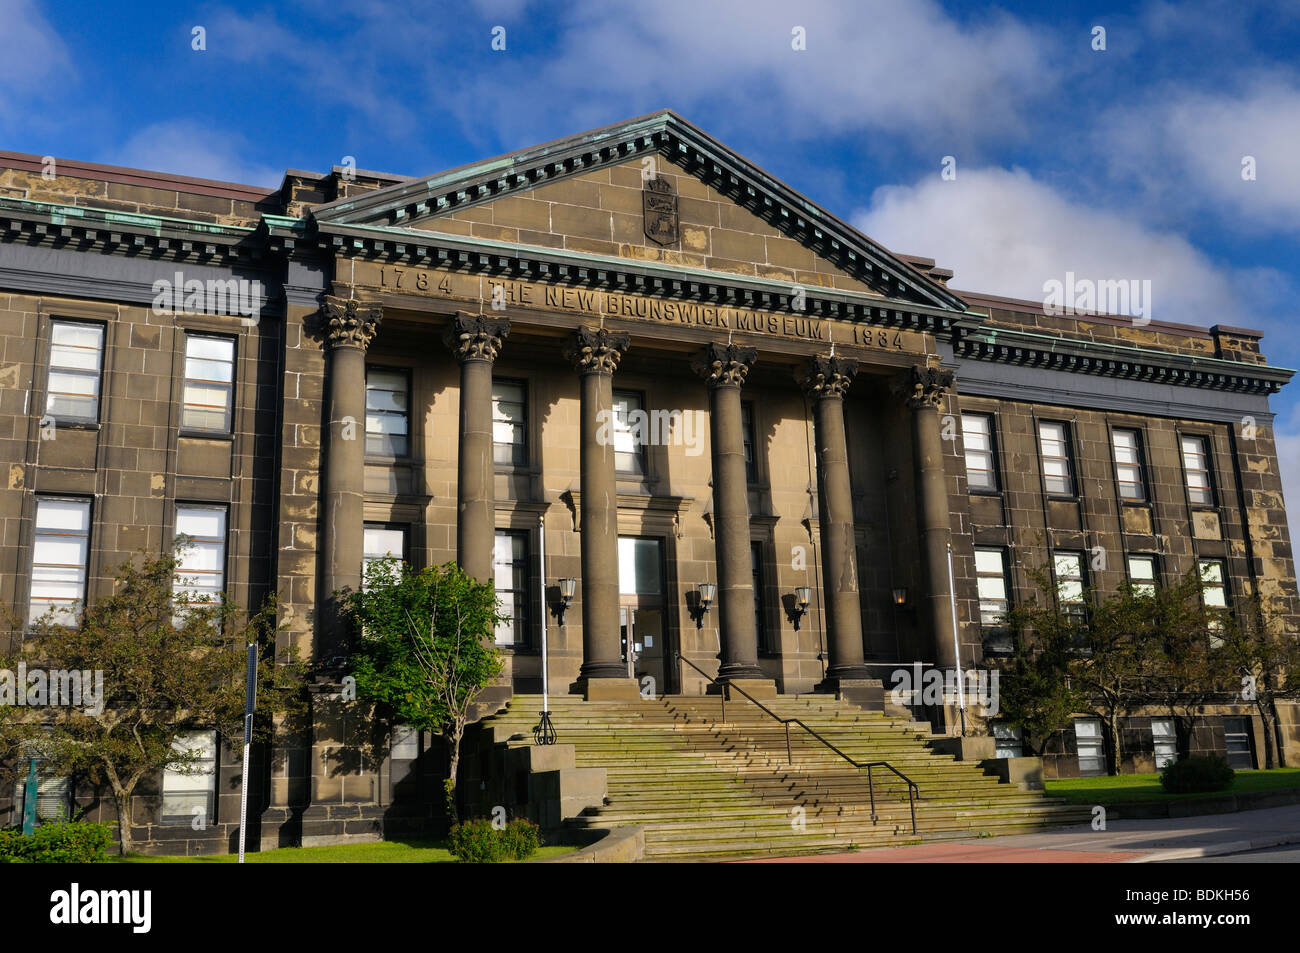 Archives and Research Library of the New Brunswick Museum in Saint John - Stock Image